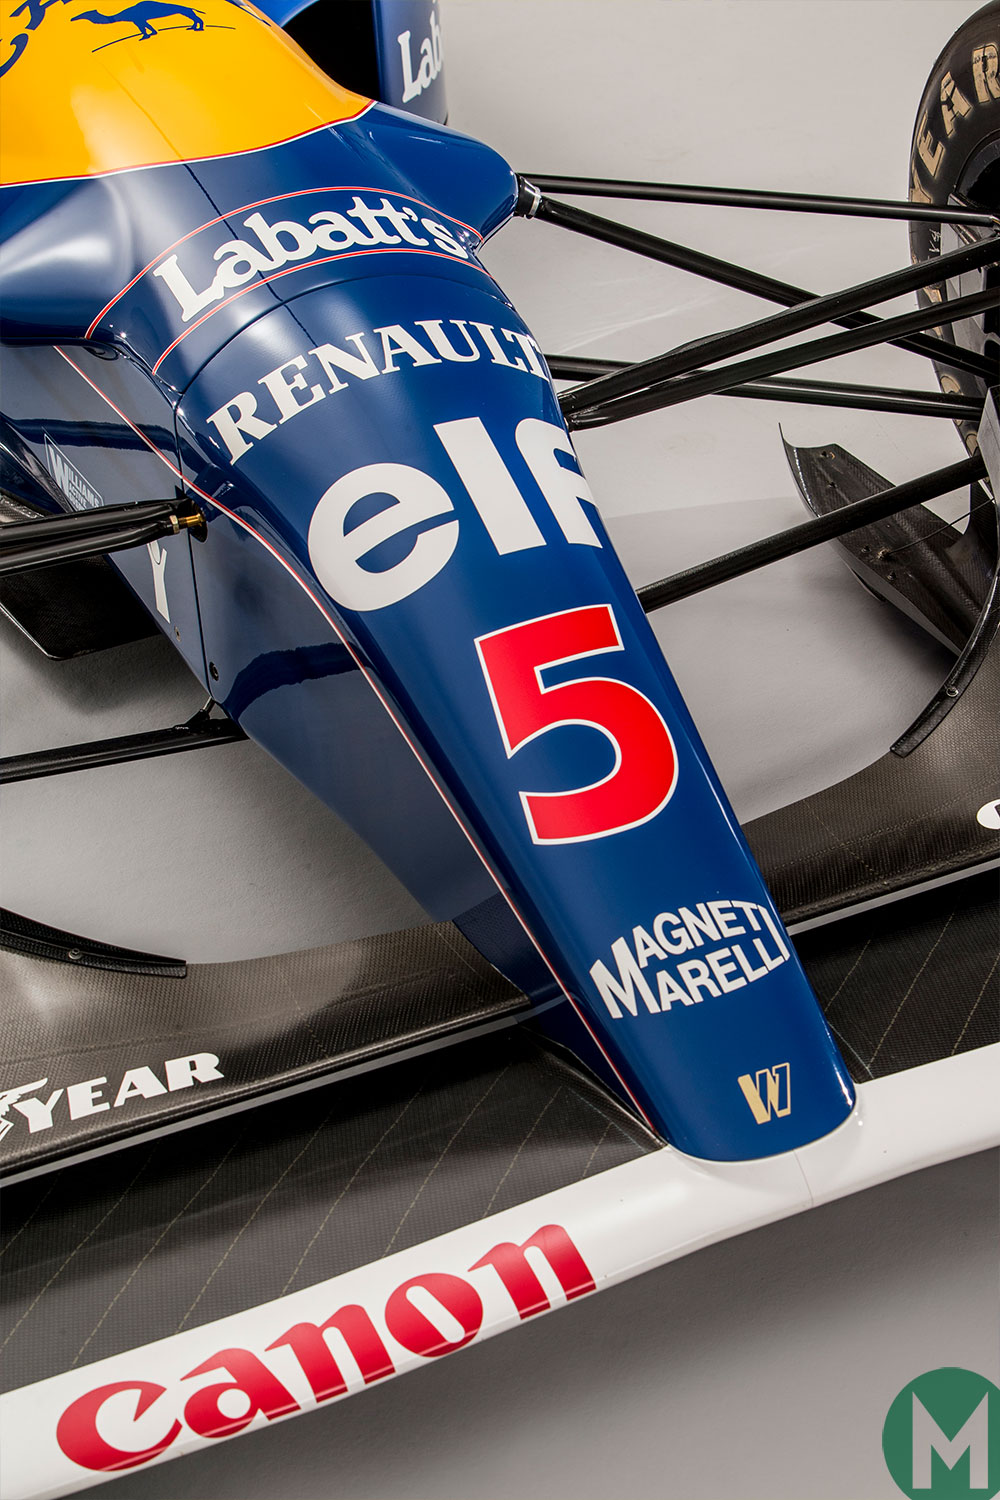 Mansell_Williams_FW14B_07